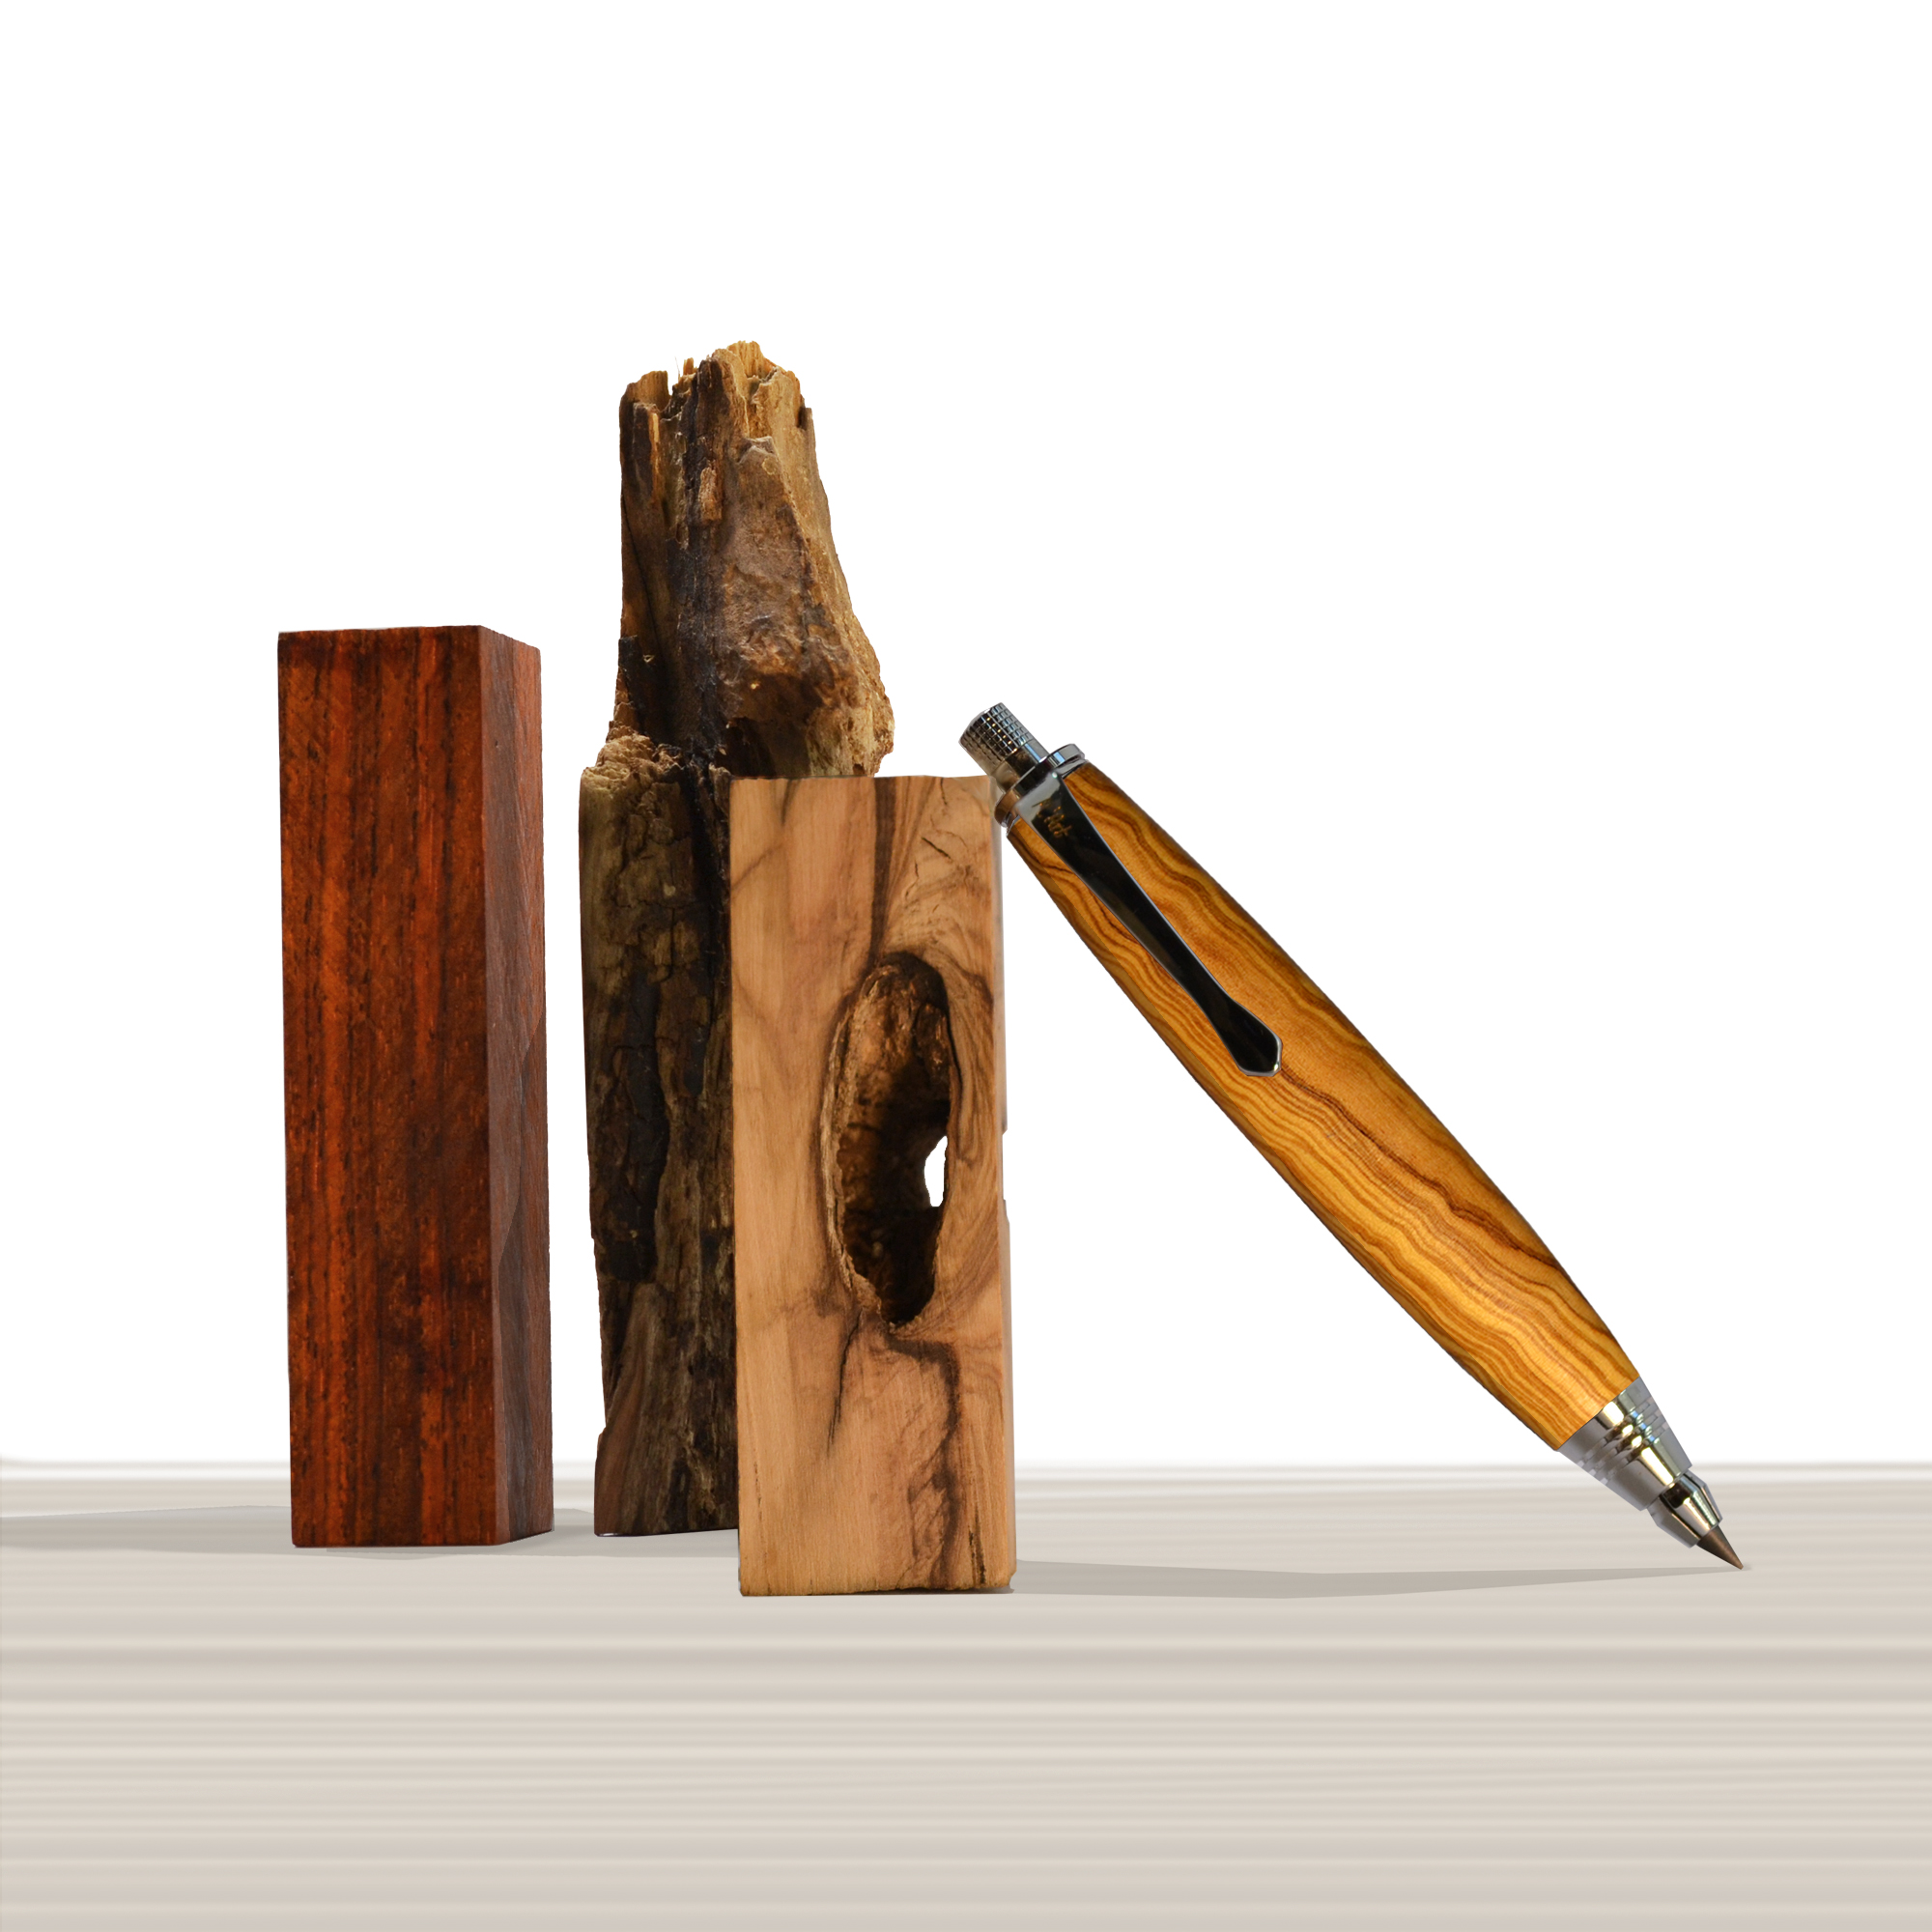 Ligabue pencil in Olive wood